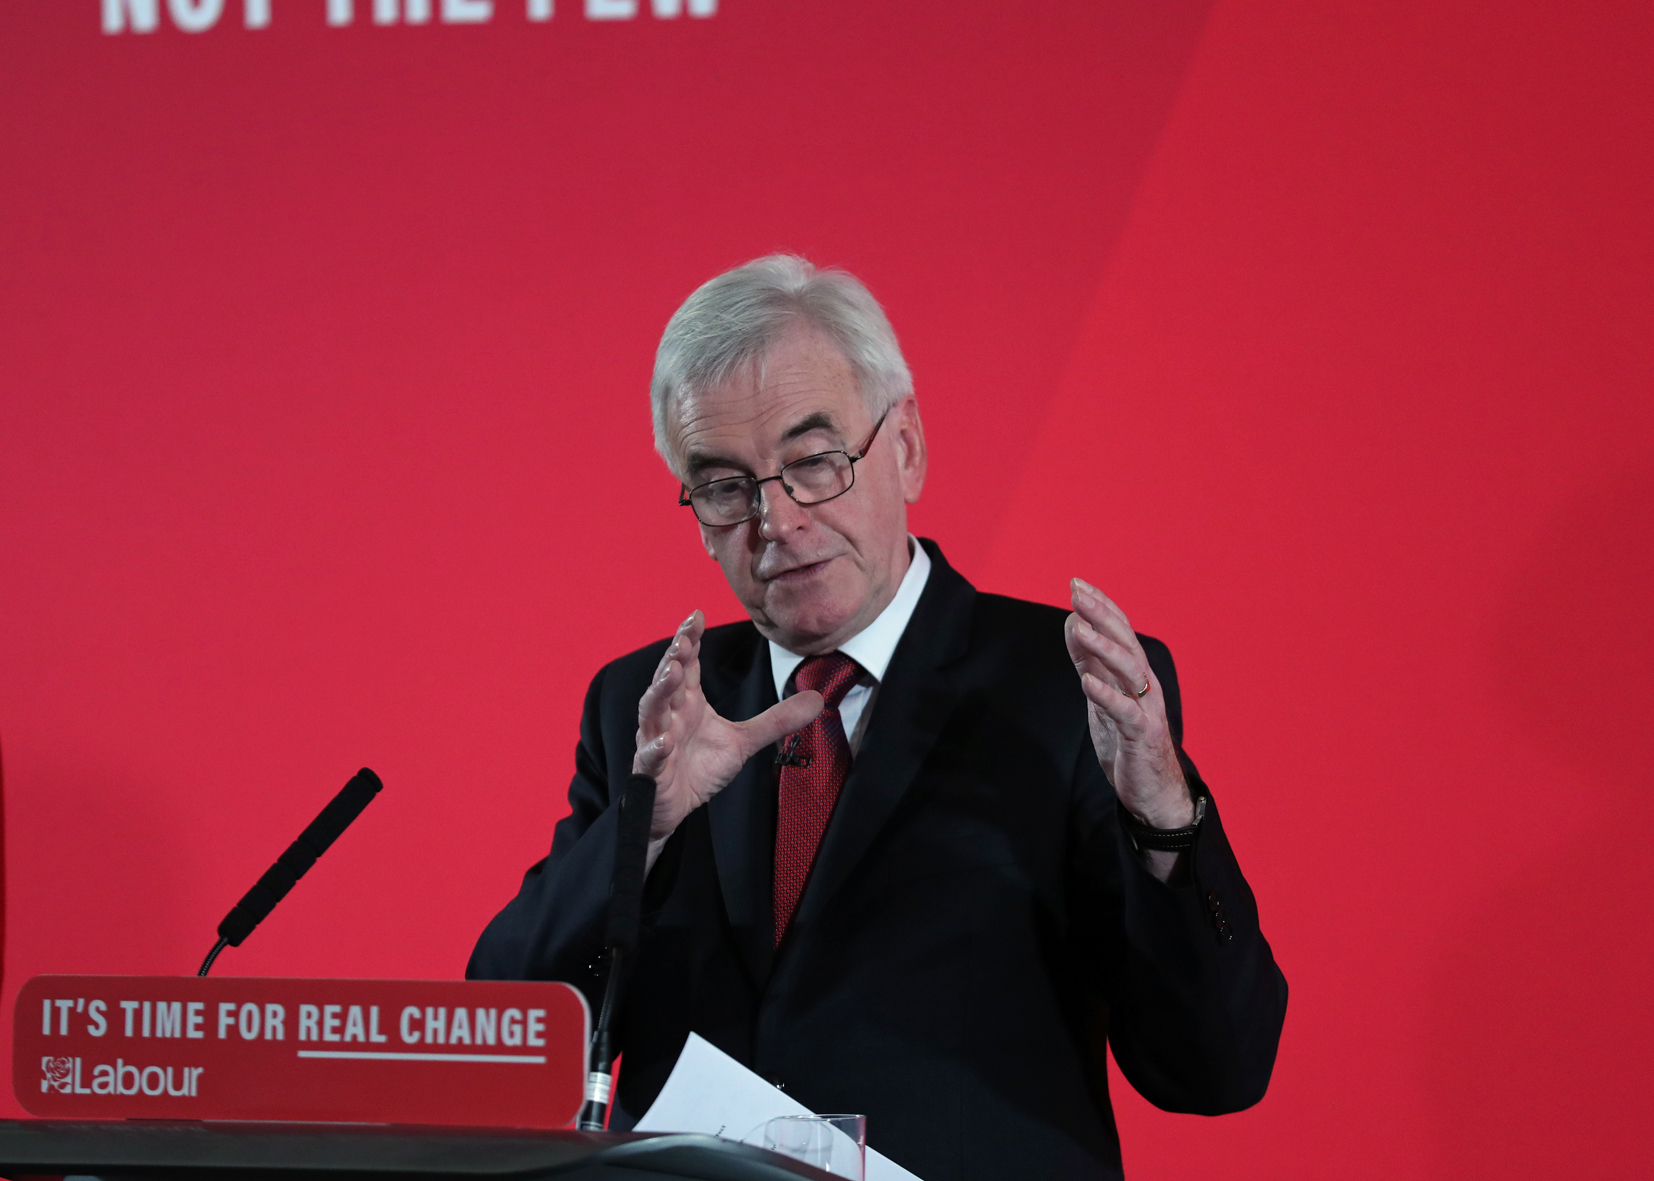 Shadow chancellor John McDonnell delivers a speech on the economy, at Church House, in Westminster, London, ahead of the General Election.